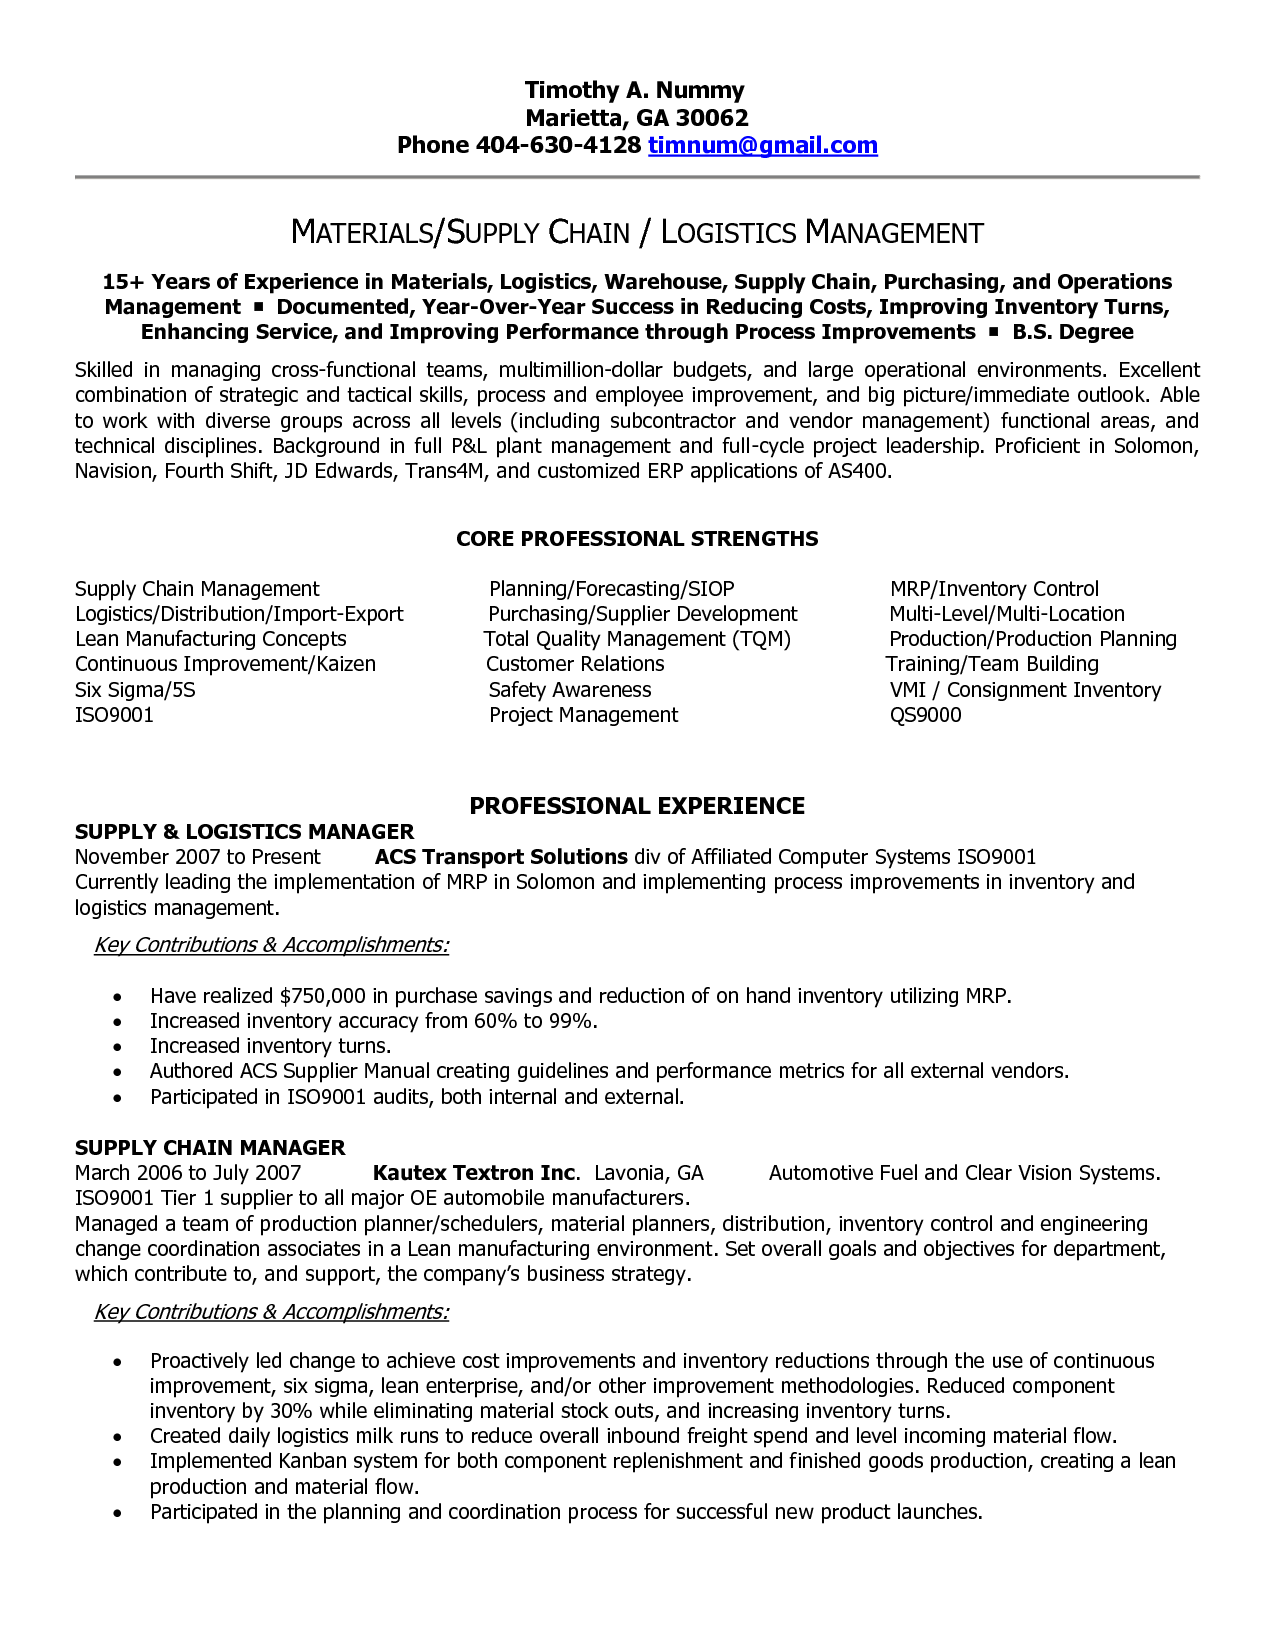 Senior Management Resume Templates Supply Chain Resume Templates Supply Chain Manager In